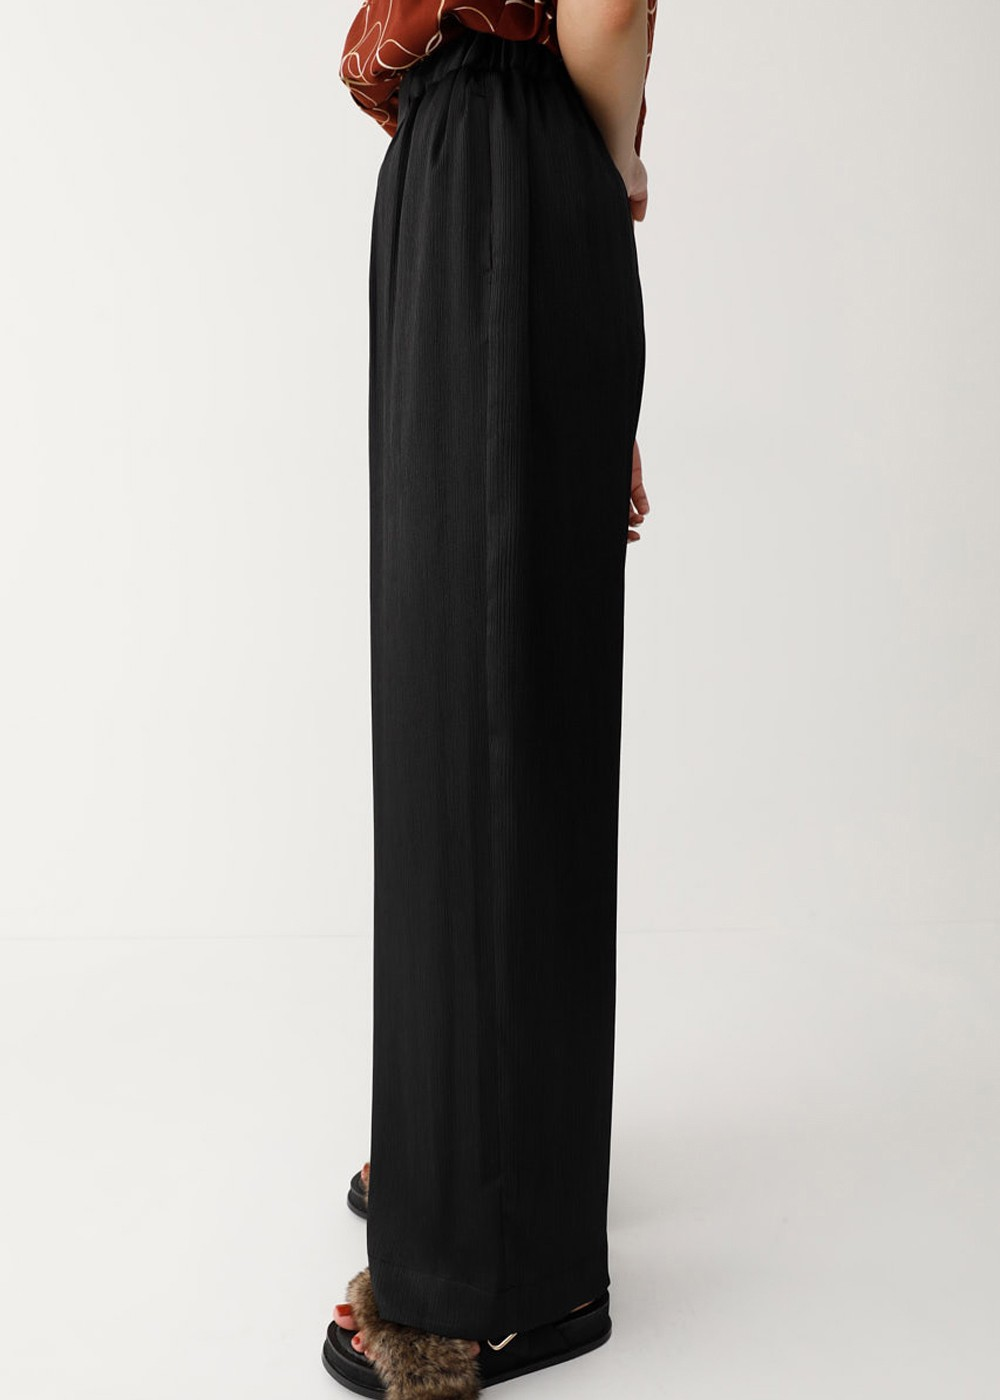 【最大60%OFF】NARROW PLEATS WIDE PANTS|BLK|ワイド|MOUSSY